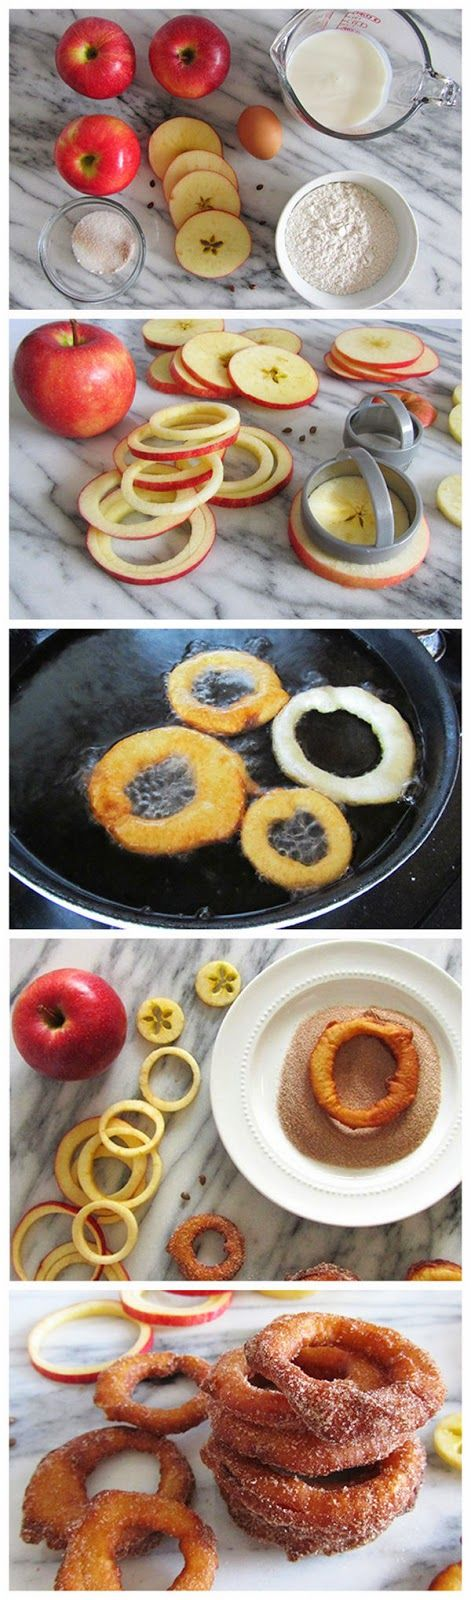 Easy Cinnamon Apple Rings this looks so good